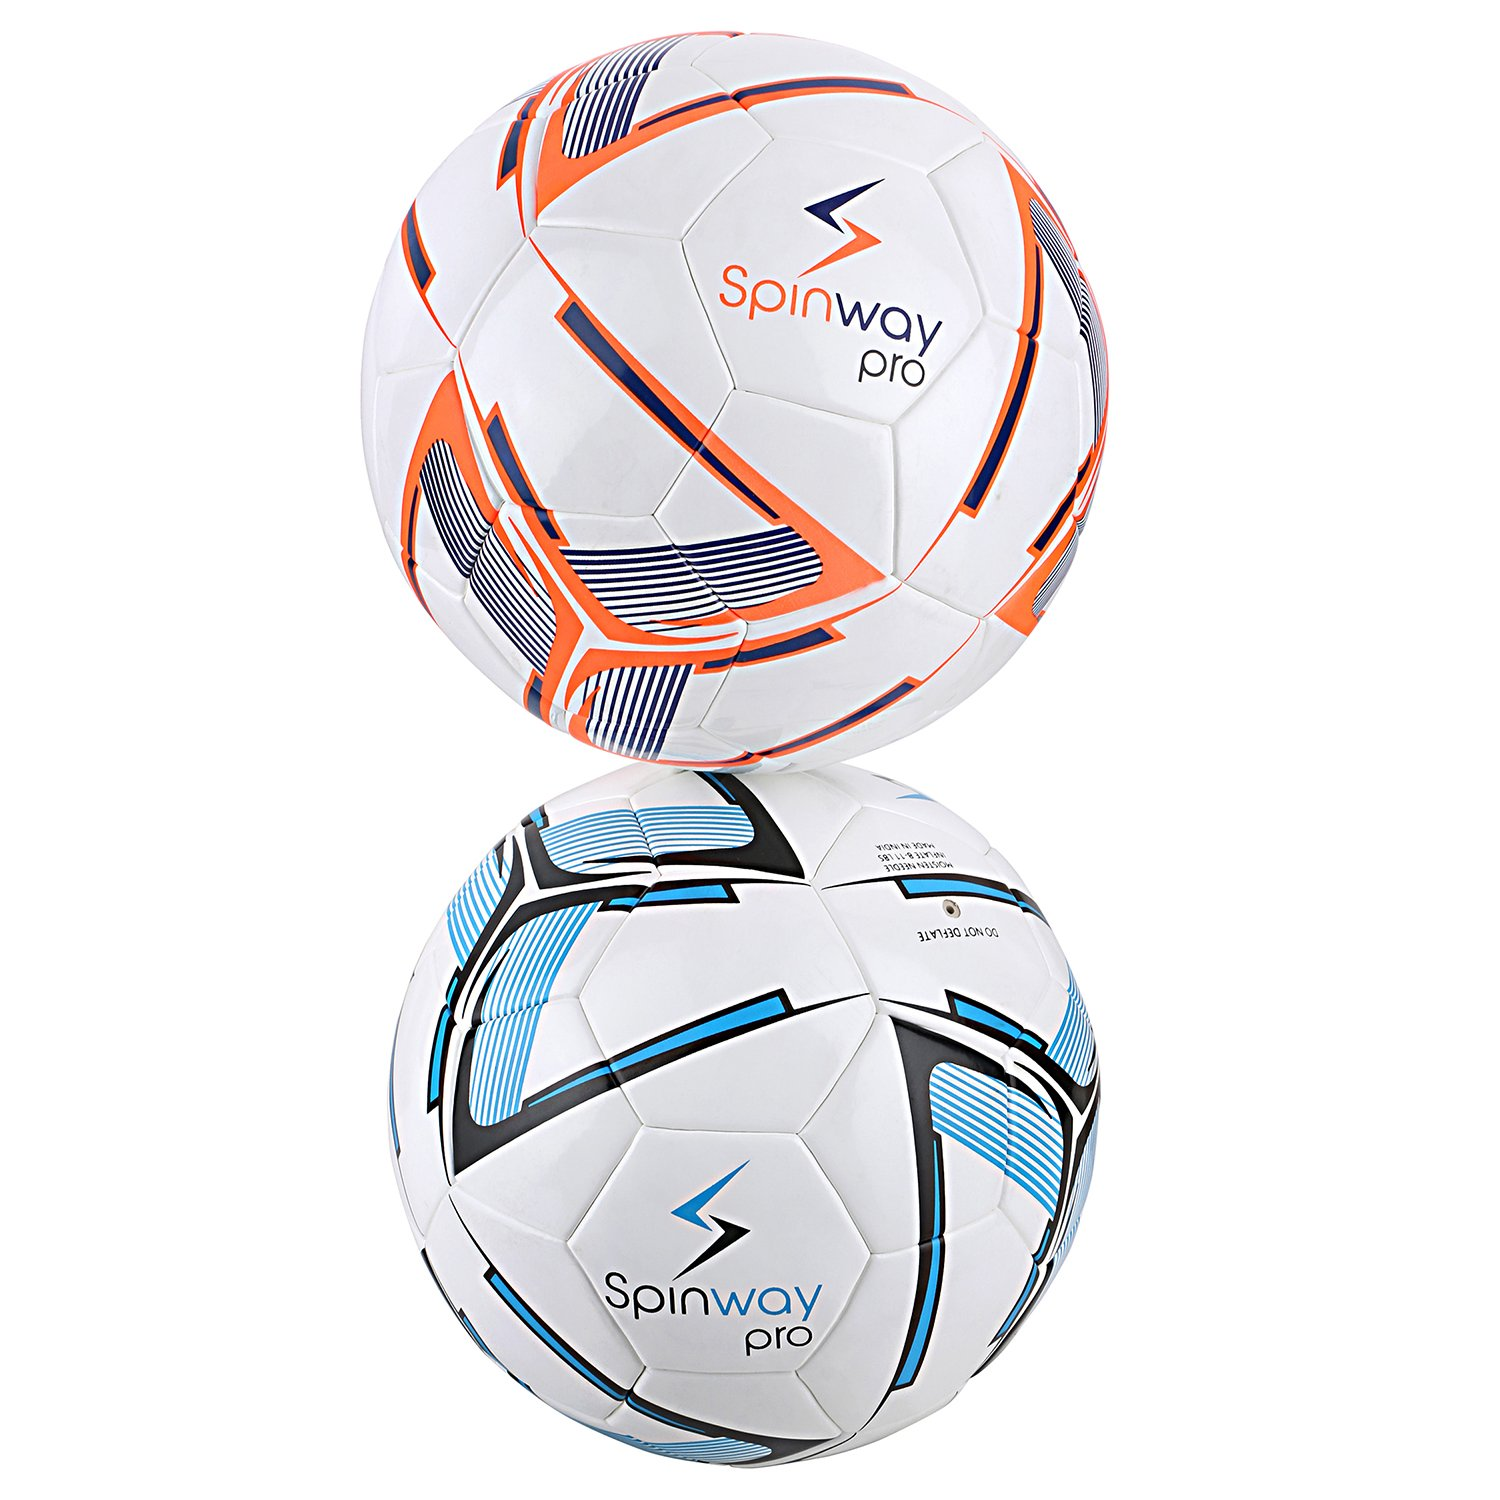 Spinway Football Pro Sw-500 for Professional Play,Water Resistant | (Blue) by Spinway (Image #4)